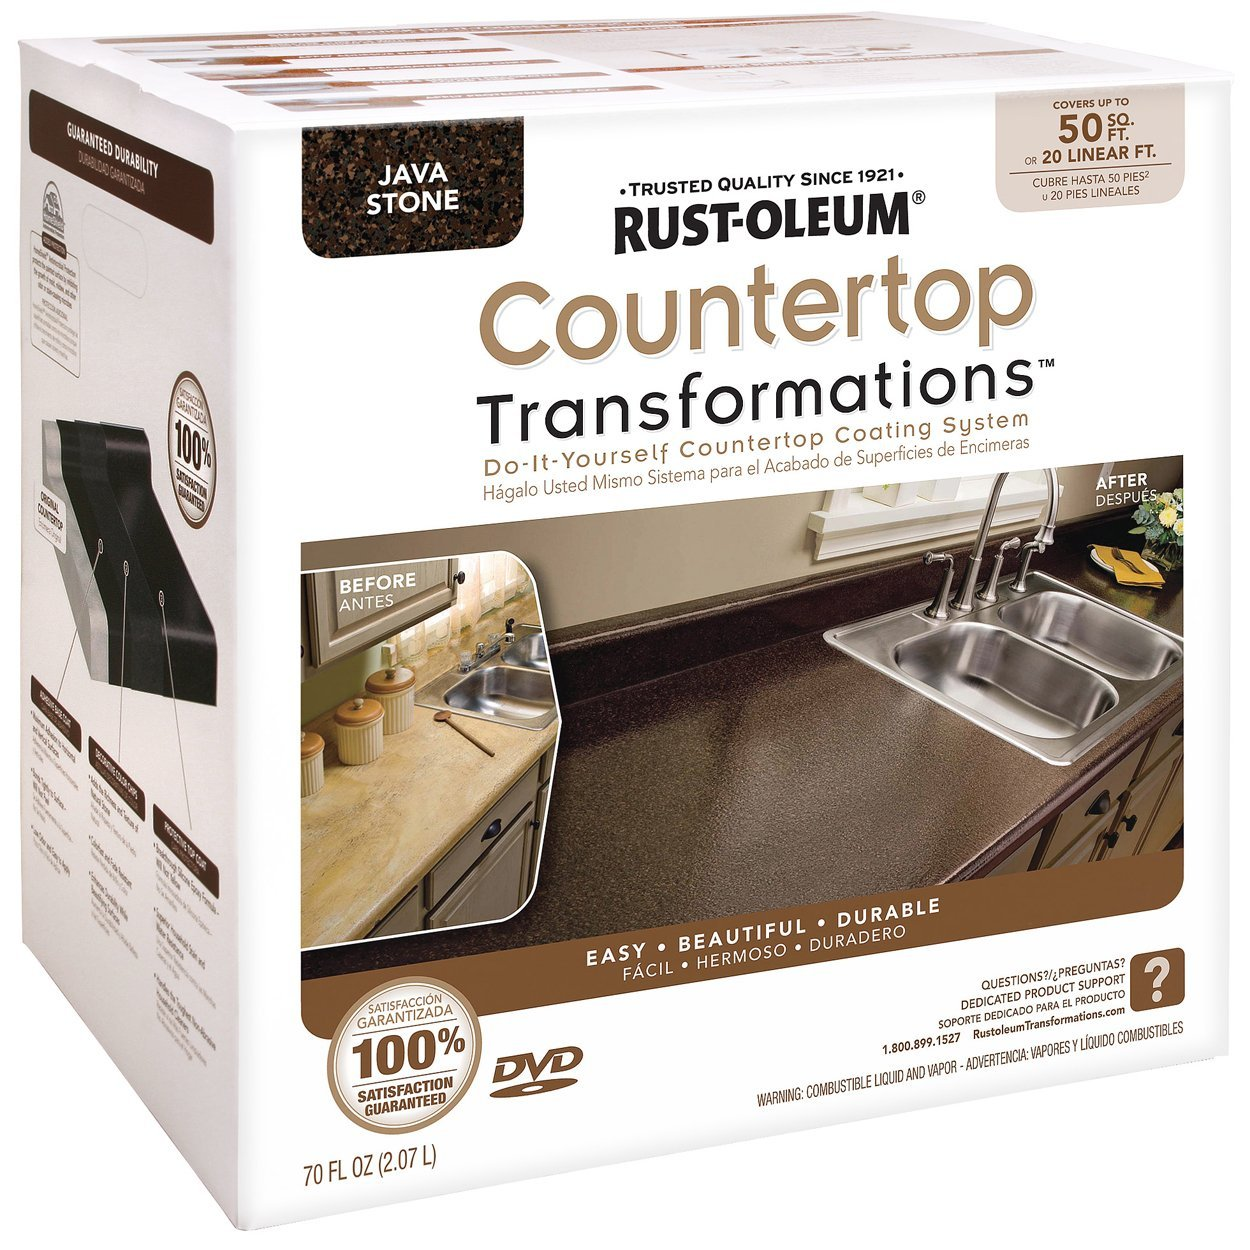 Rustoleum Countertop Paint Directions : transform kitchen cabinets and countertop with Rust-Oleum Countertop ...